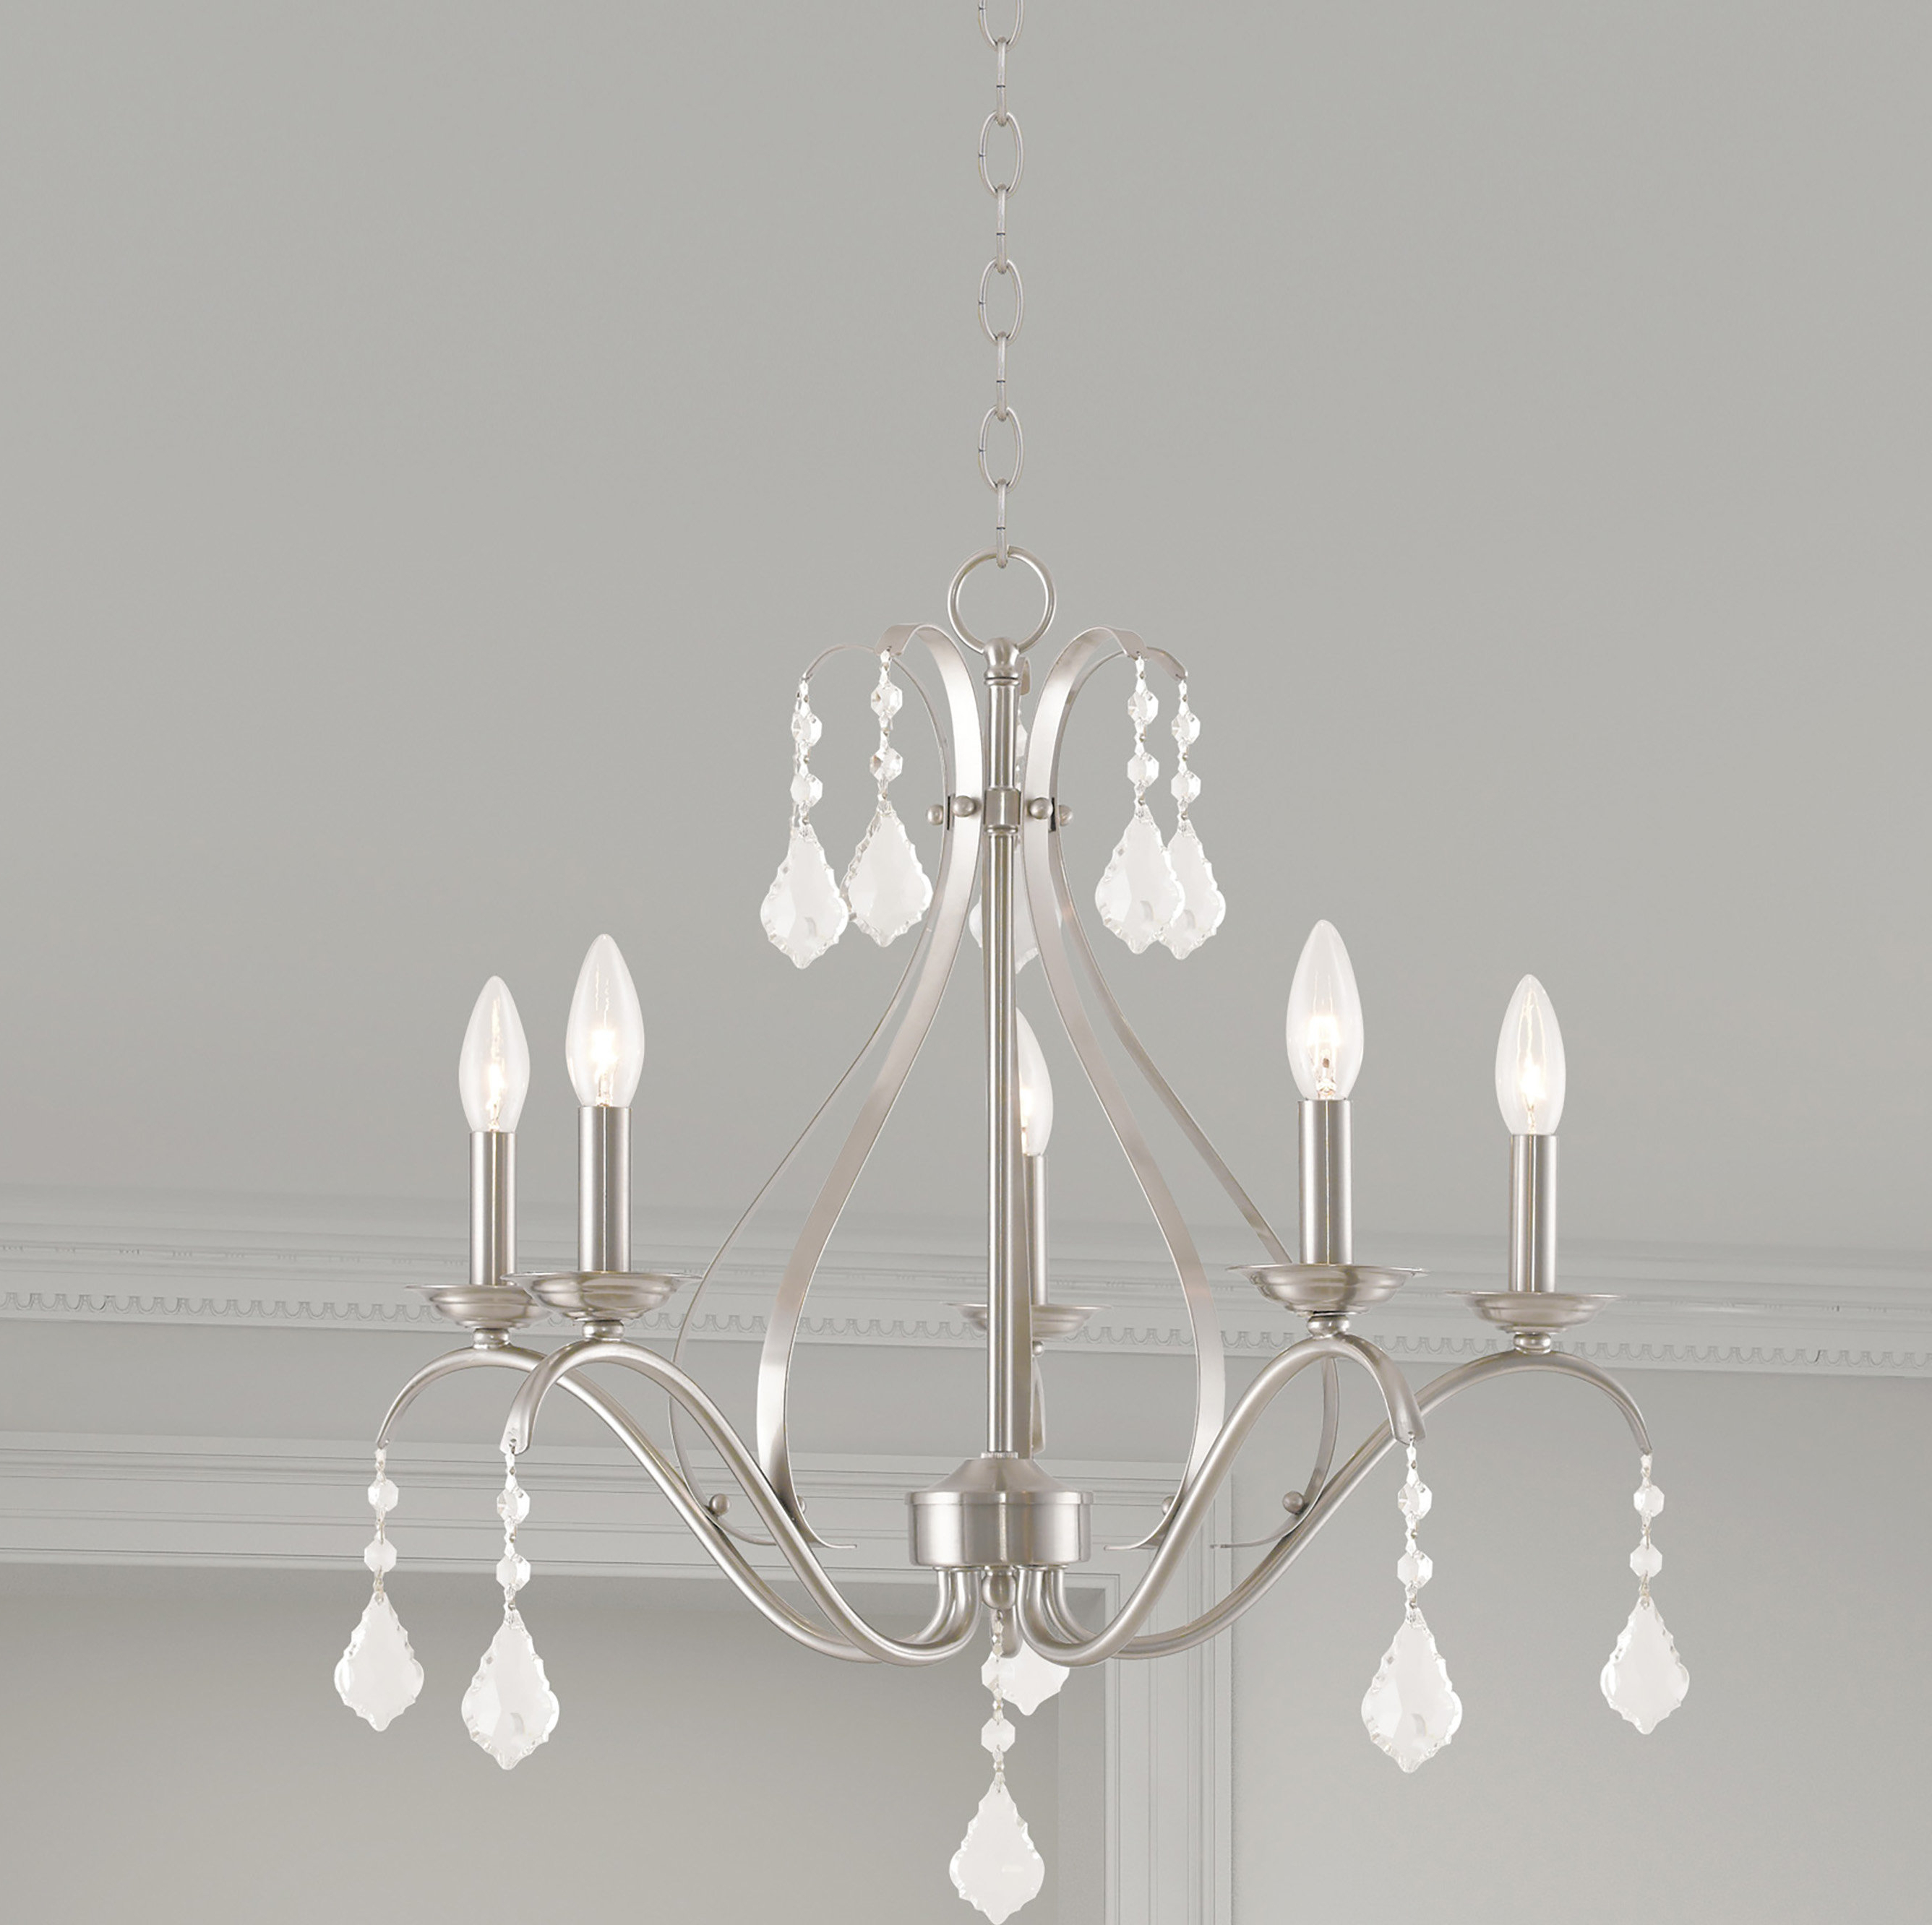 Newest Hesse 5 Light Candle Style Chandeliers Inside Aria 5 Light Candle Style Chandelier (View 16 of 20)